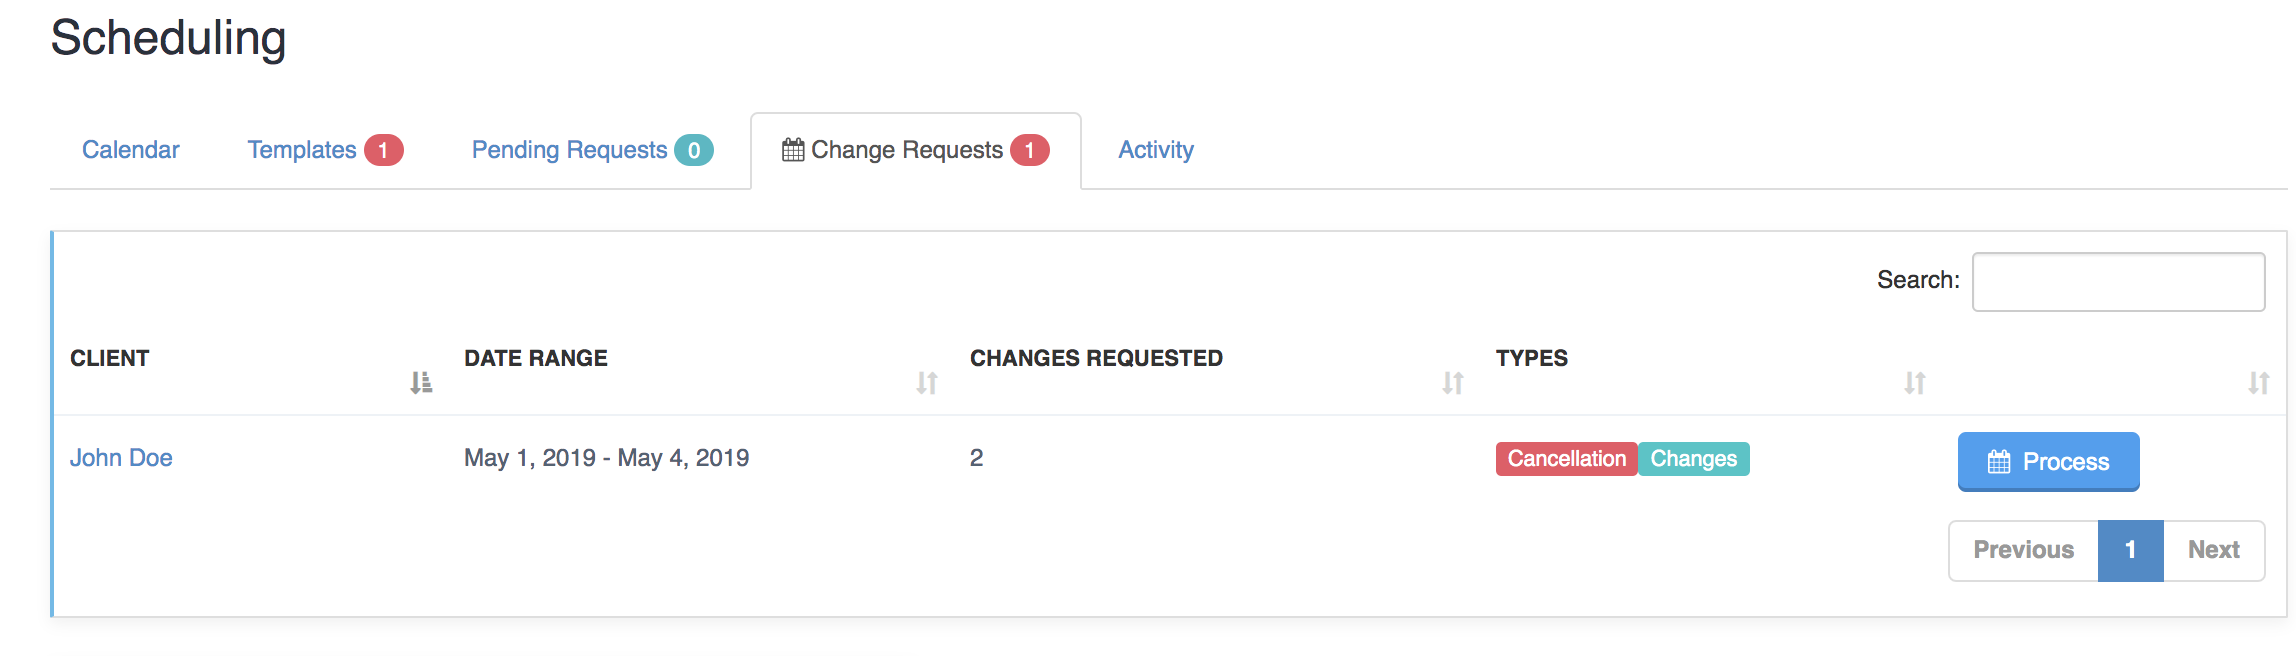 Processing Change And Cancellation Requests - Change/Cancelation Requests against specific visits